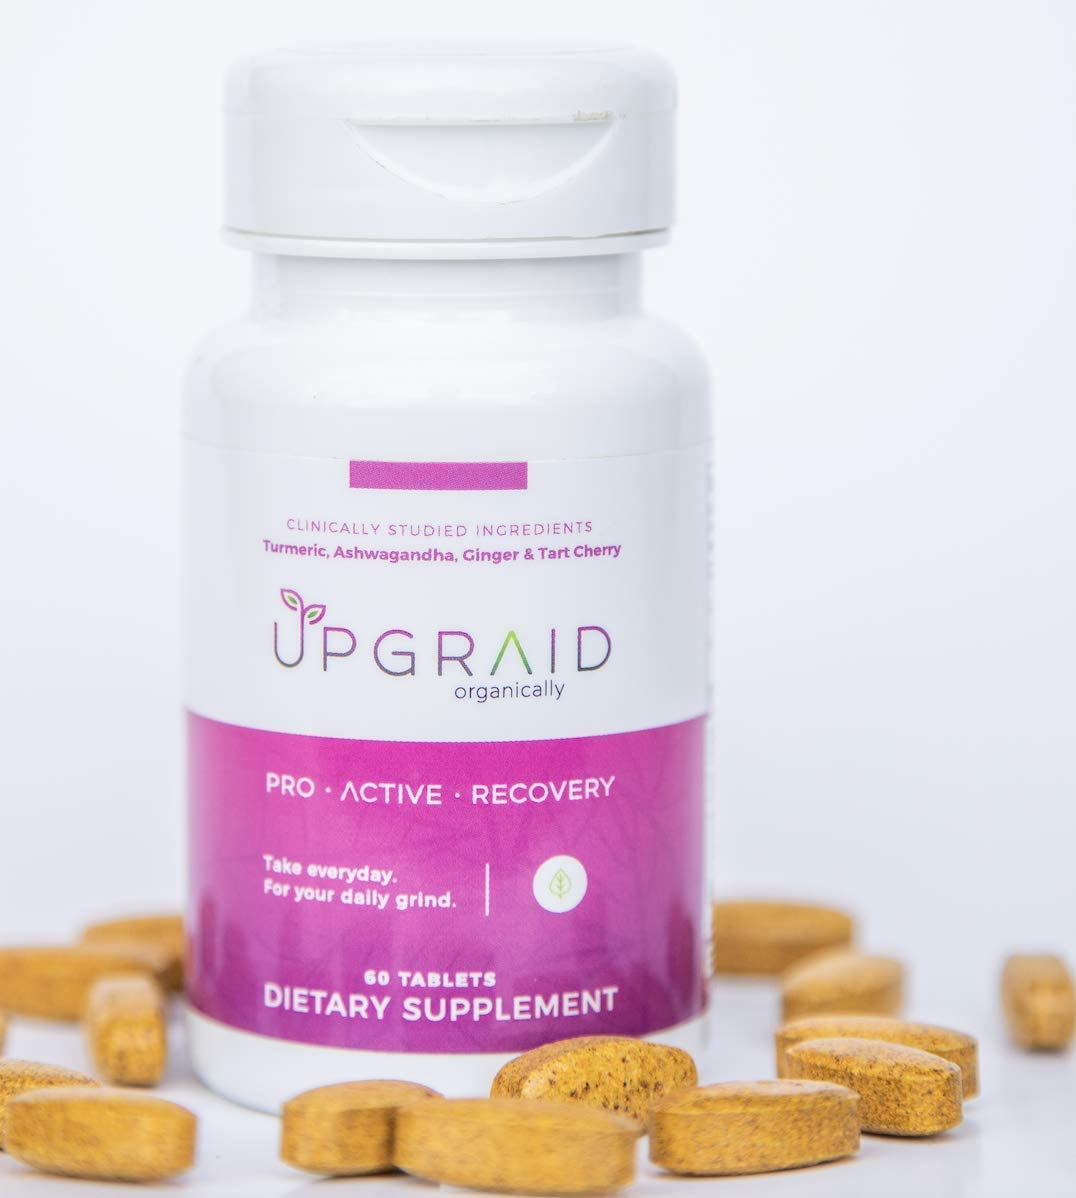 UPGRAID Organically Proactive Recovery